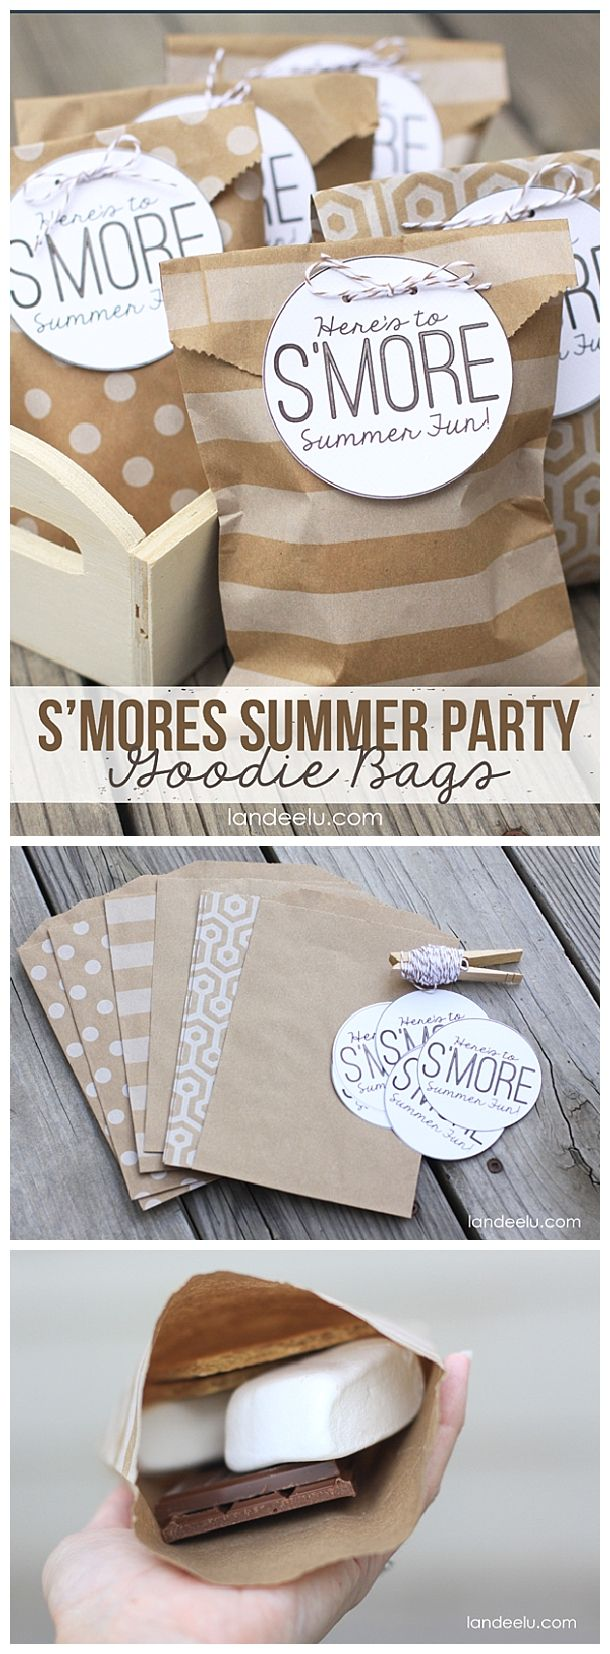 Smores Summer Party Goodie Bags | Goodie bags, Summer parties and ...